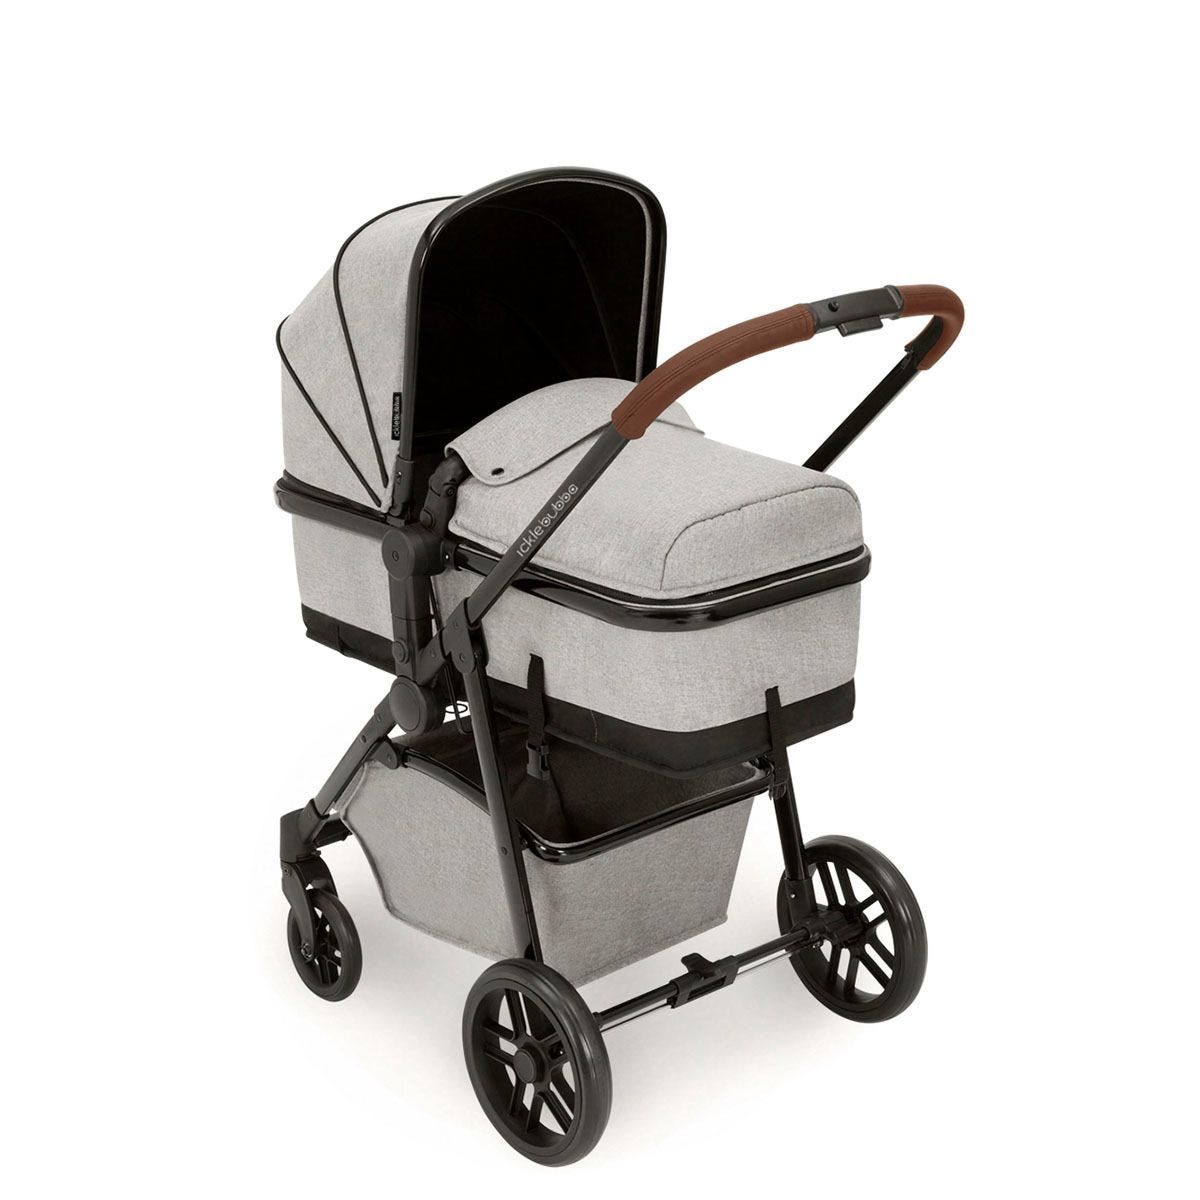 Ickle Bubba Moon 3 in 1 Travel System - Silver Grey on Black with Tan Handles